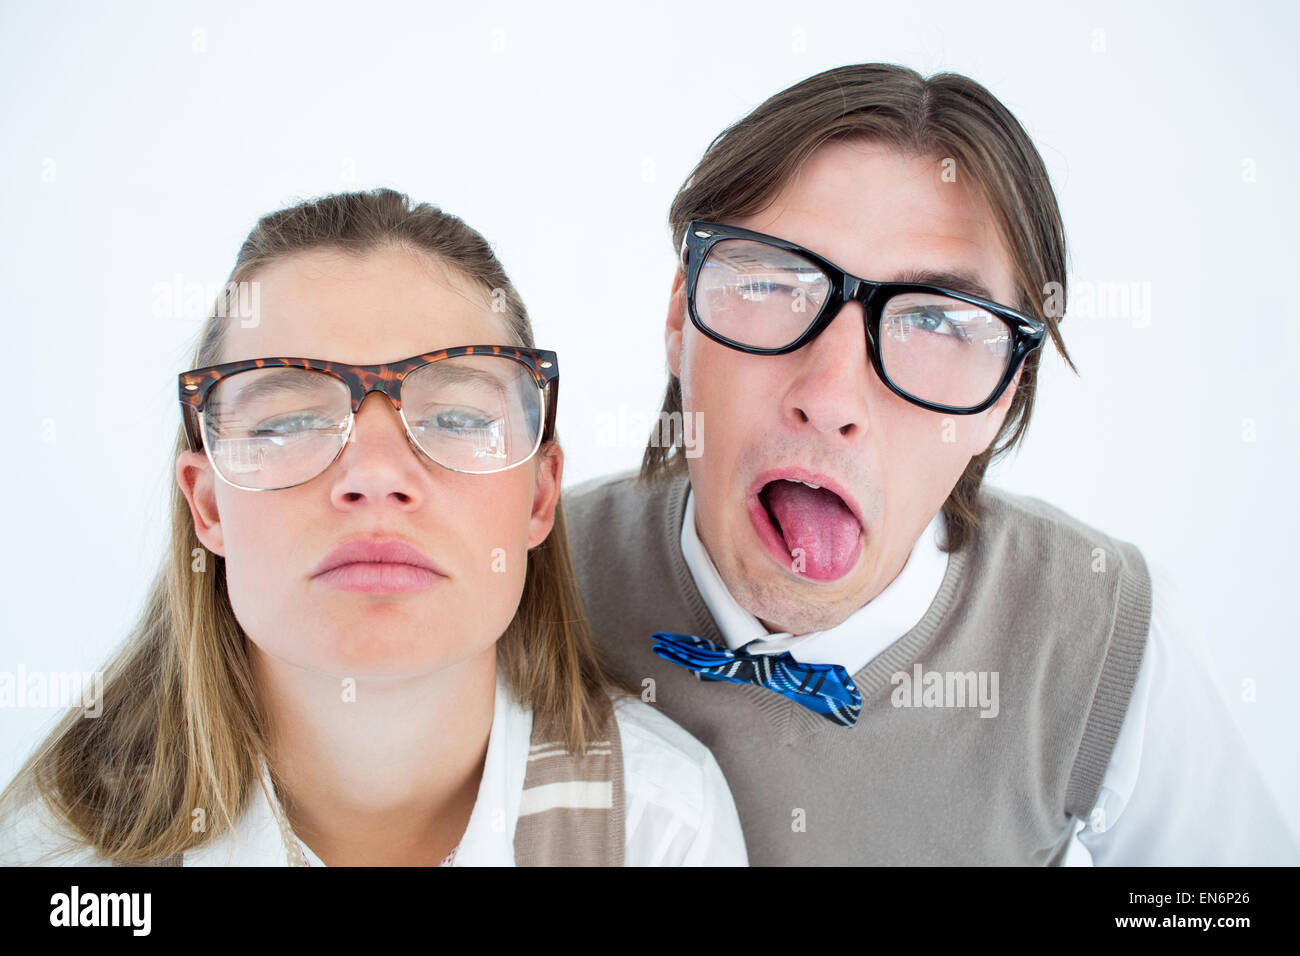 Funny geeky hipsters grimacing Stock Photo